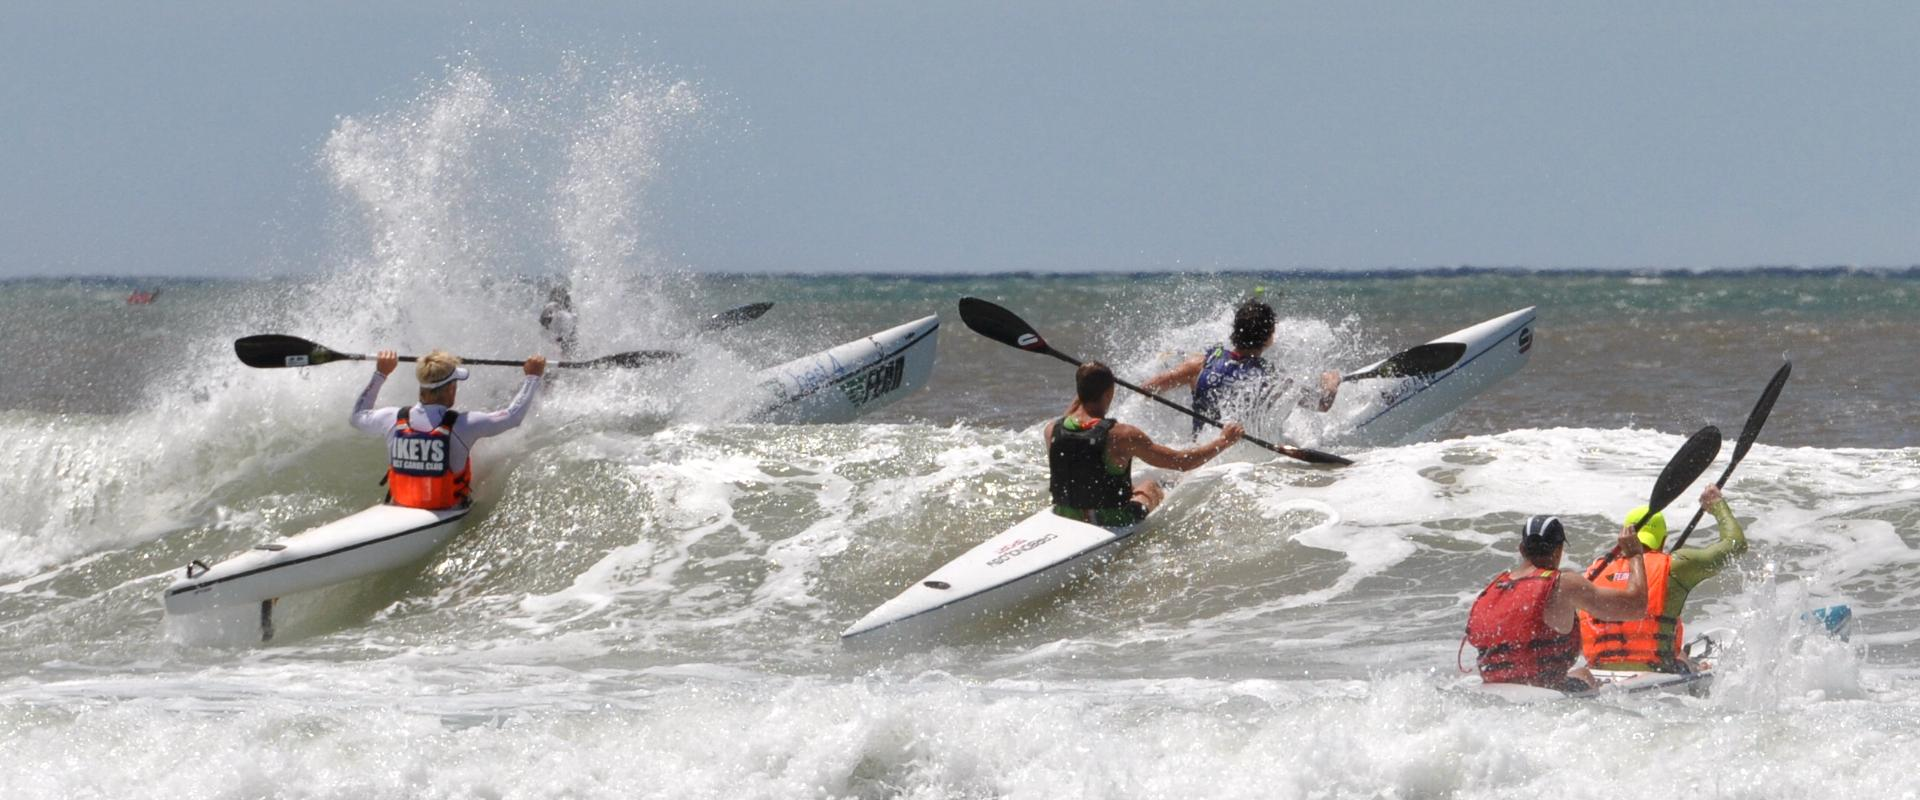 Two days of awesome surfski paddling